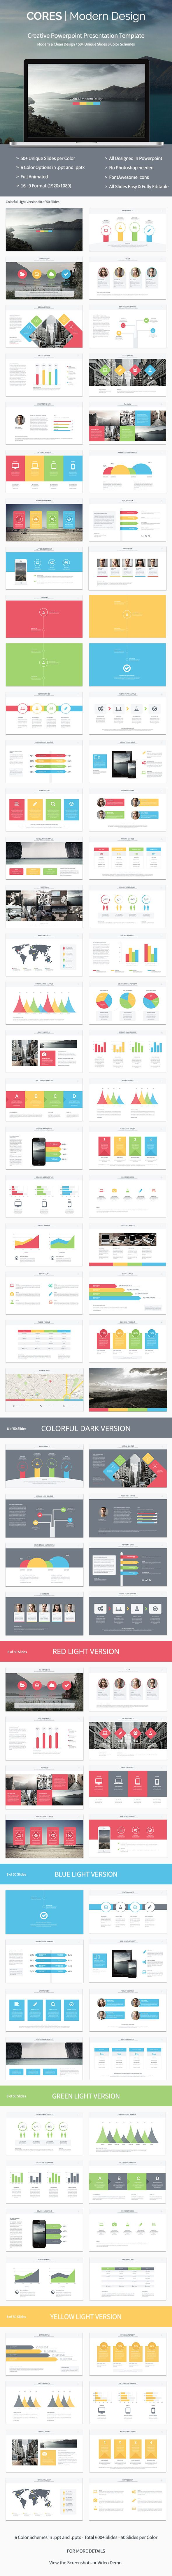 Cores - Powerpoint Presentation Template